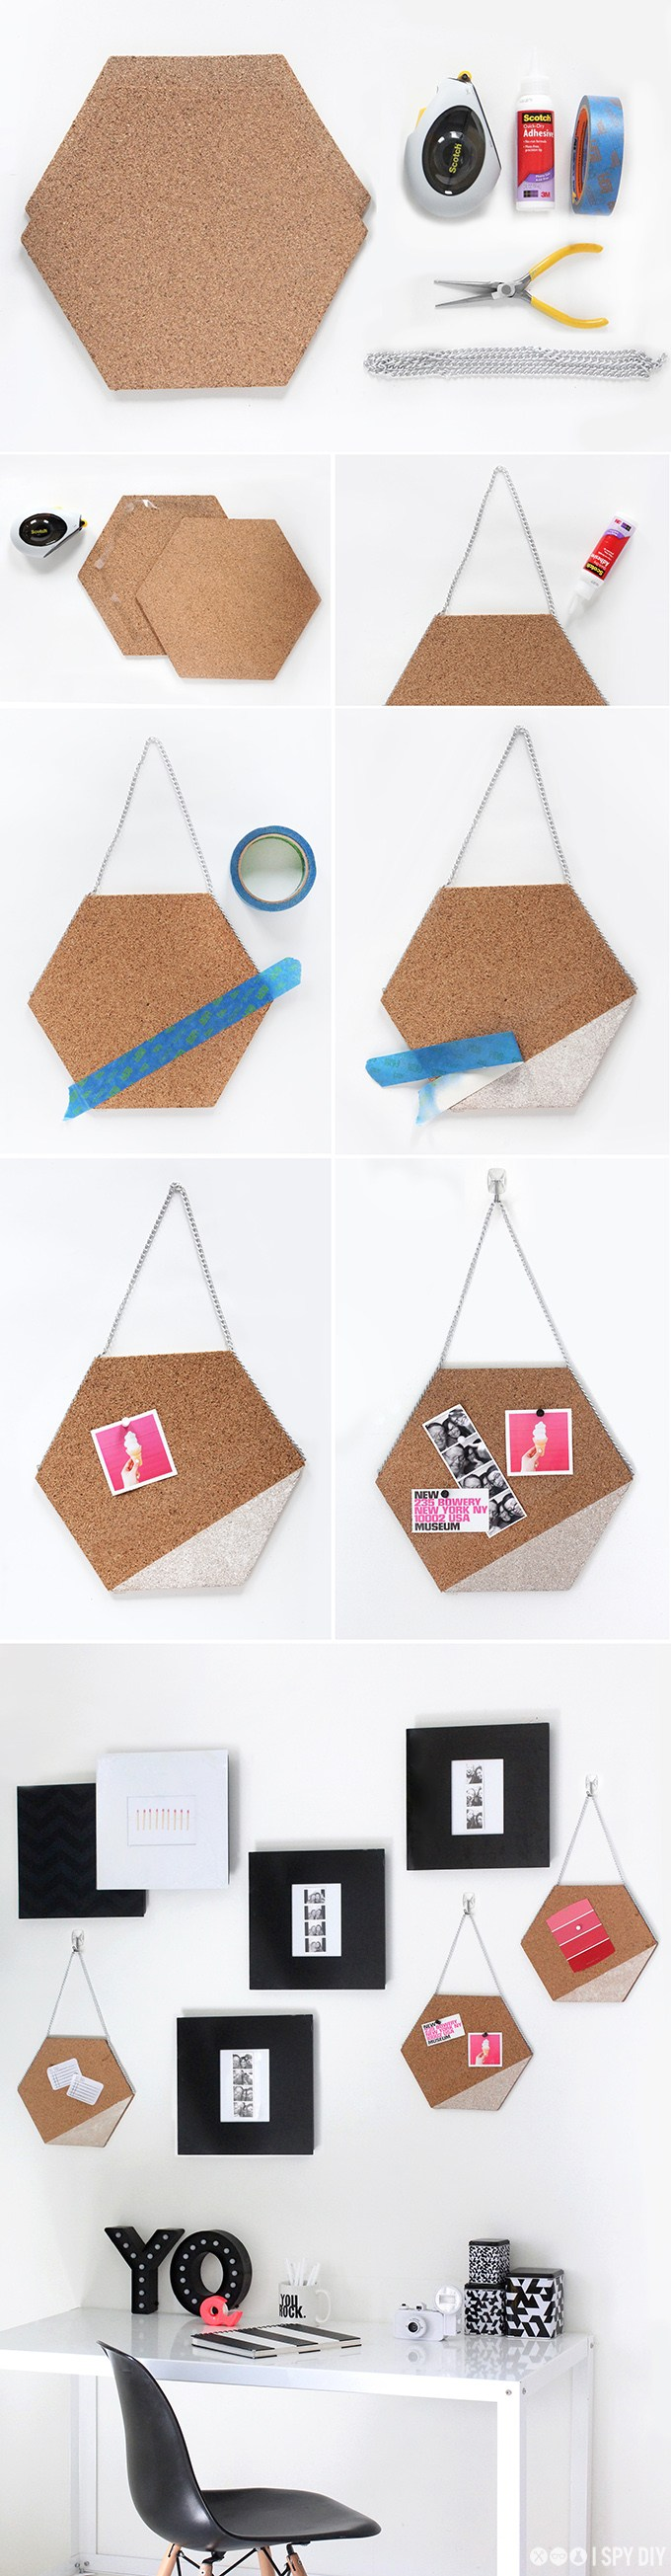 tablon hexagonos ispydiy muy ingenioso 2